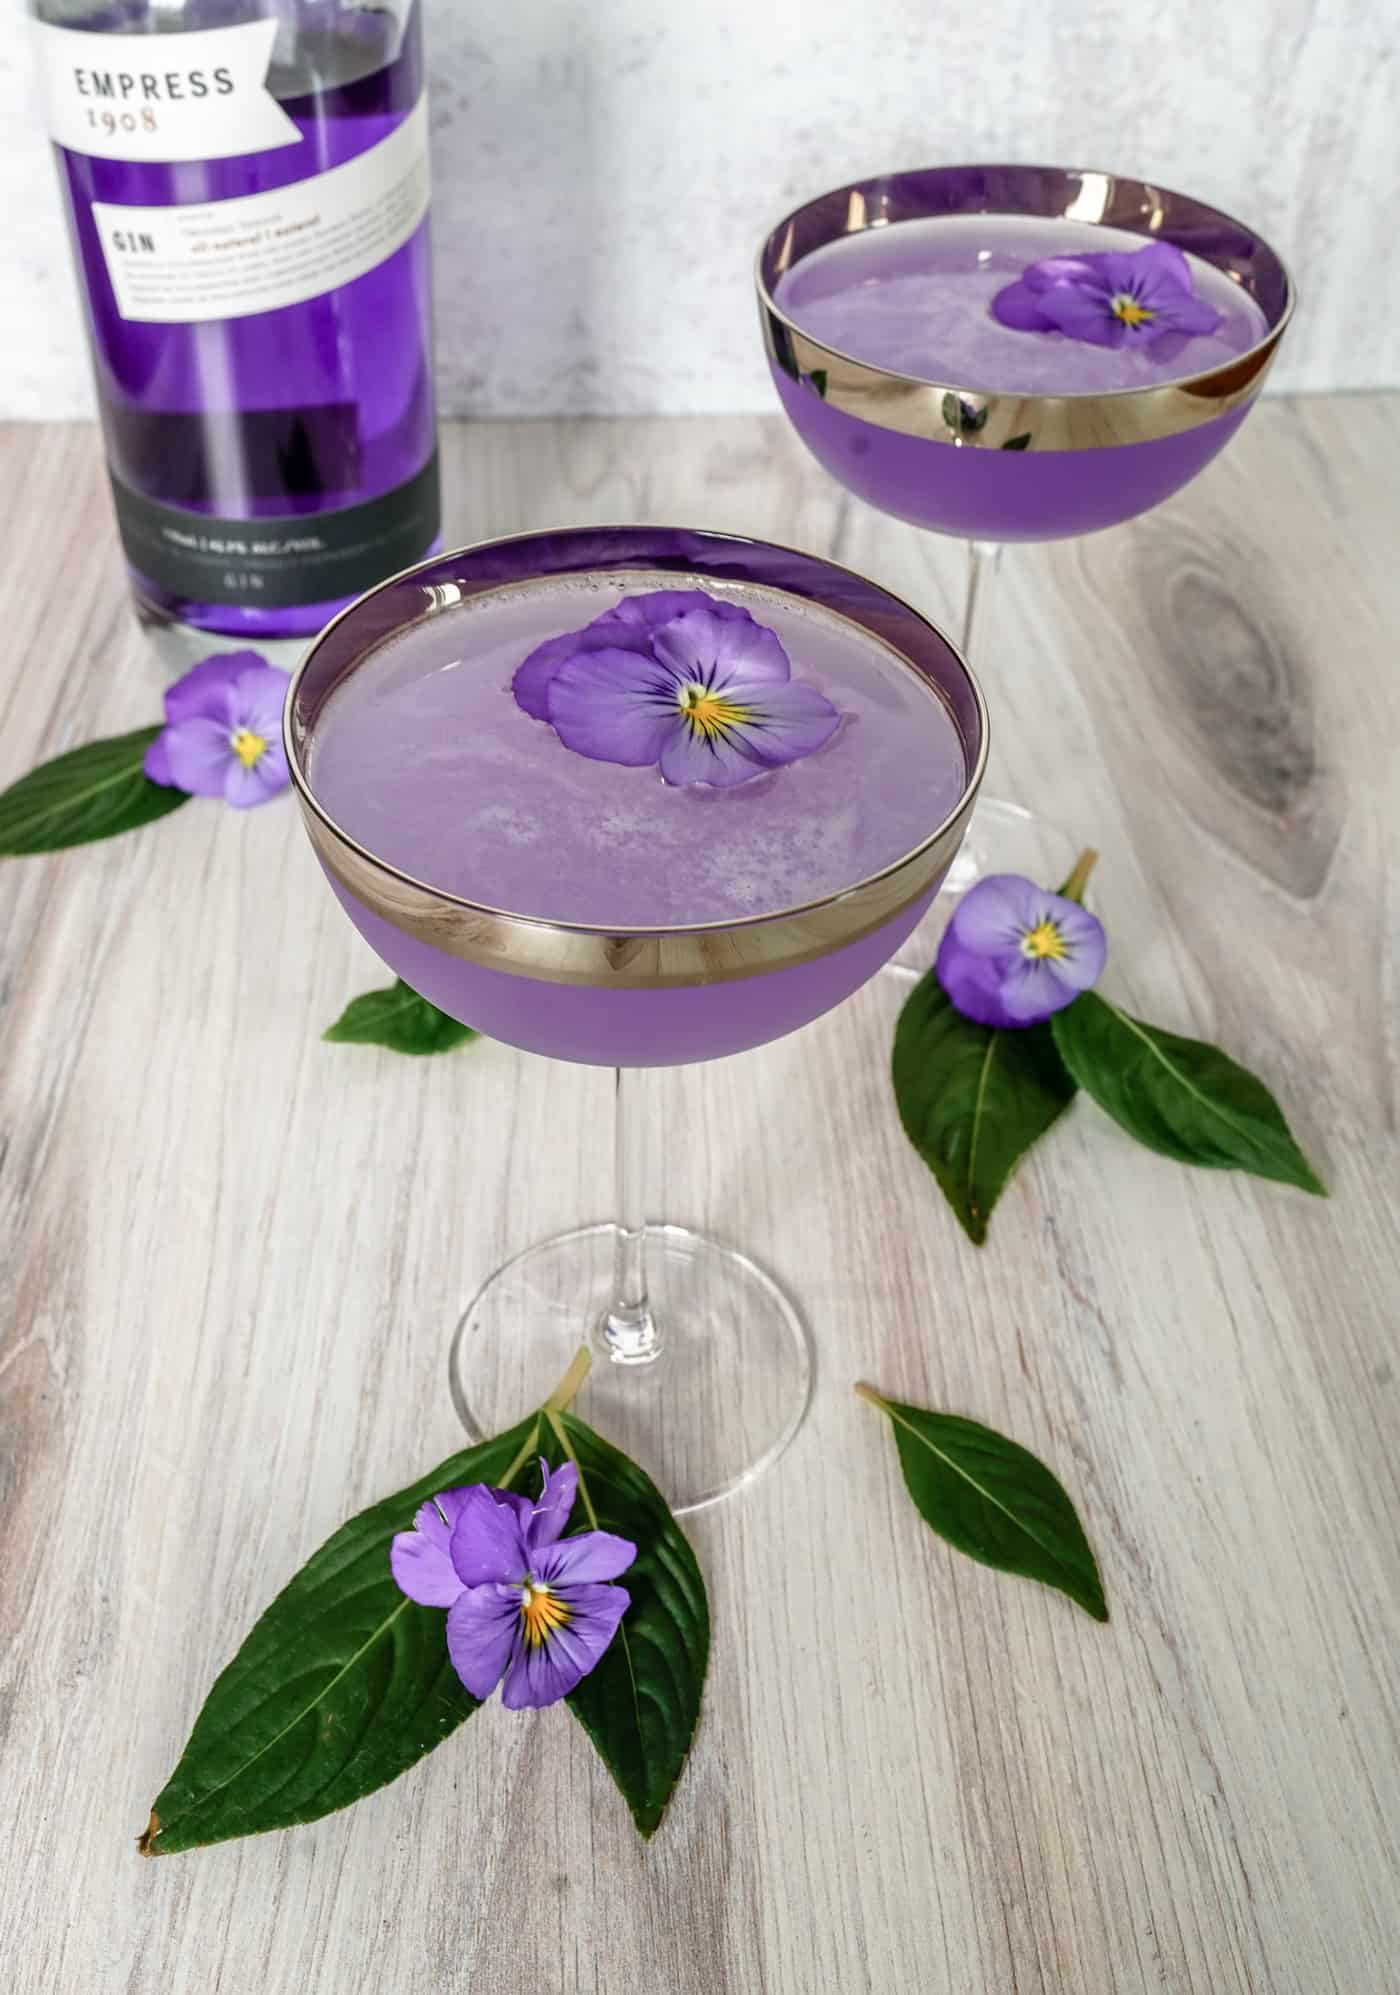 Looking for a delicious gin cocktail recipe? We have you covered with this beautiful Q1908 cocktail. This recipe is a refreshing summer cocktail that is easy to make with Spanish style gin. Make this cocktail today and let us know what you think! #ginandtonic #gincocktail #summercocktail #empressgin